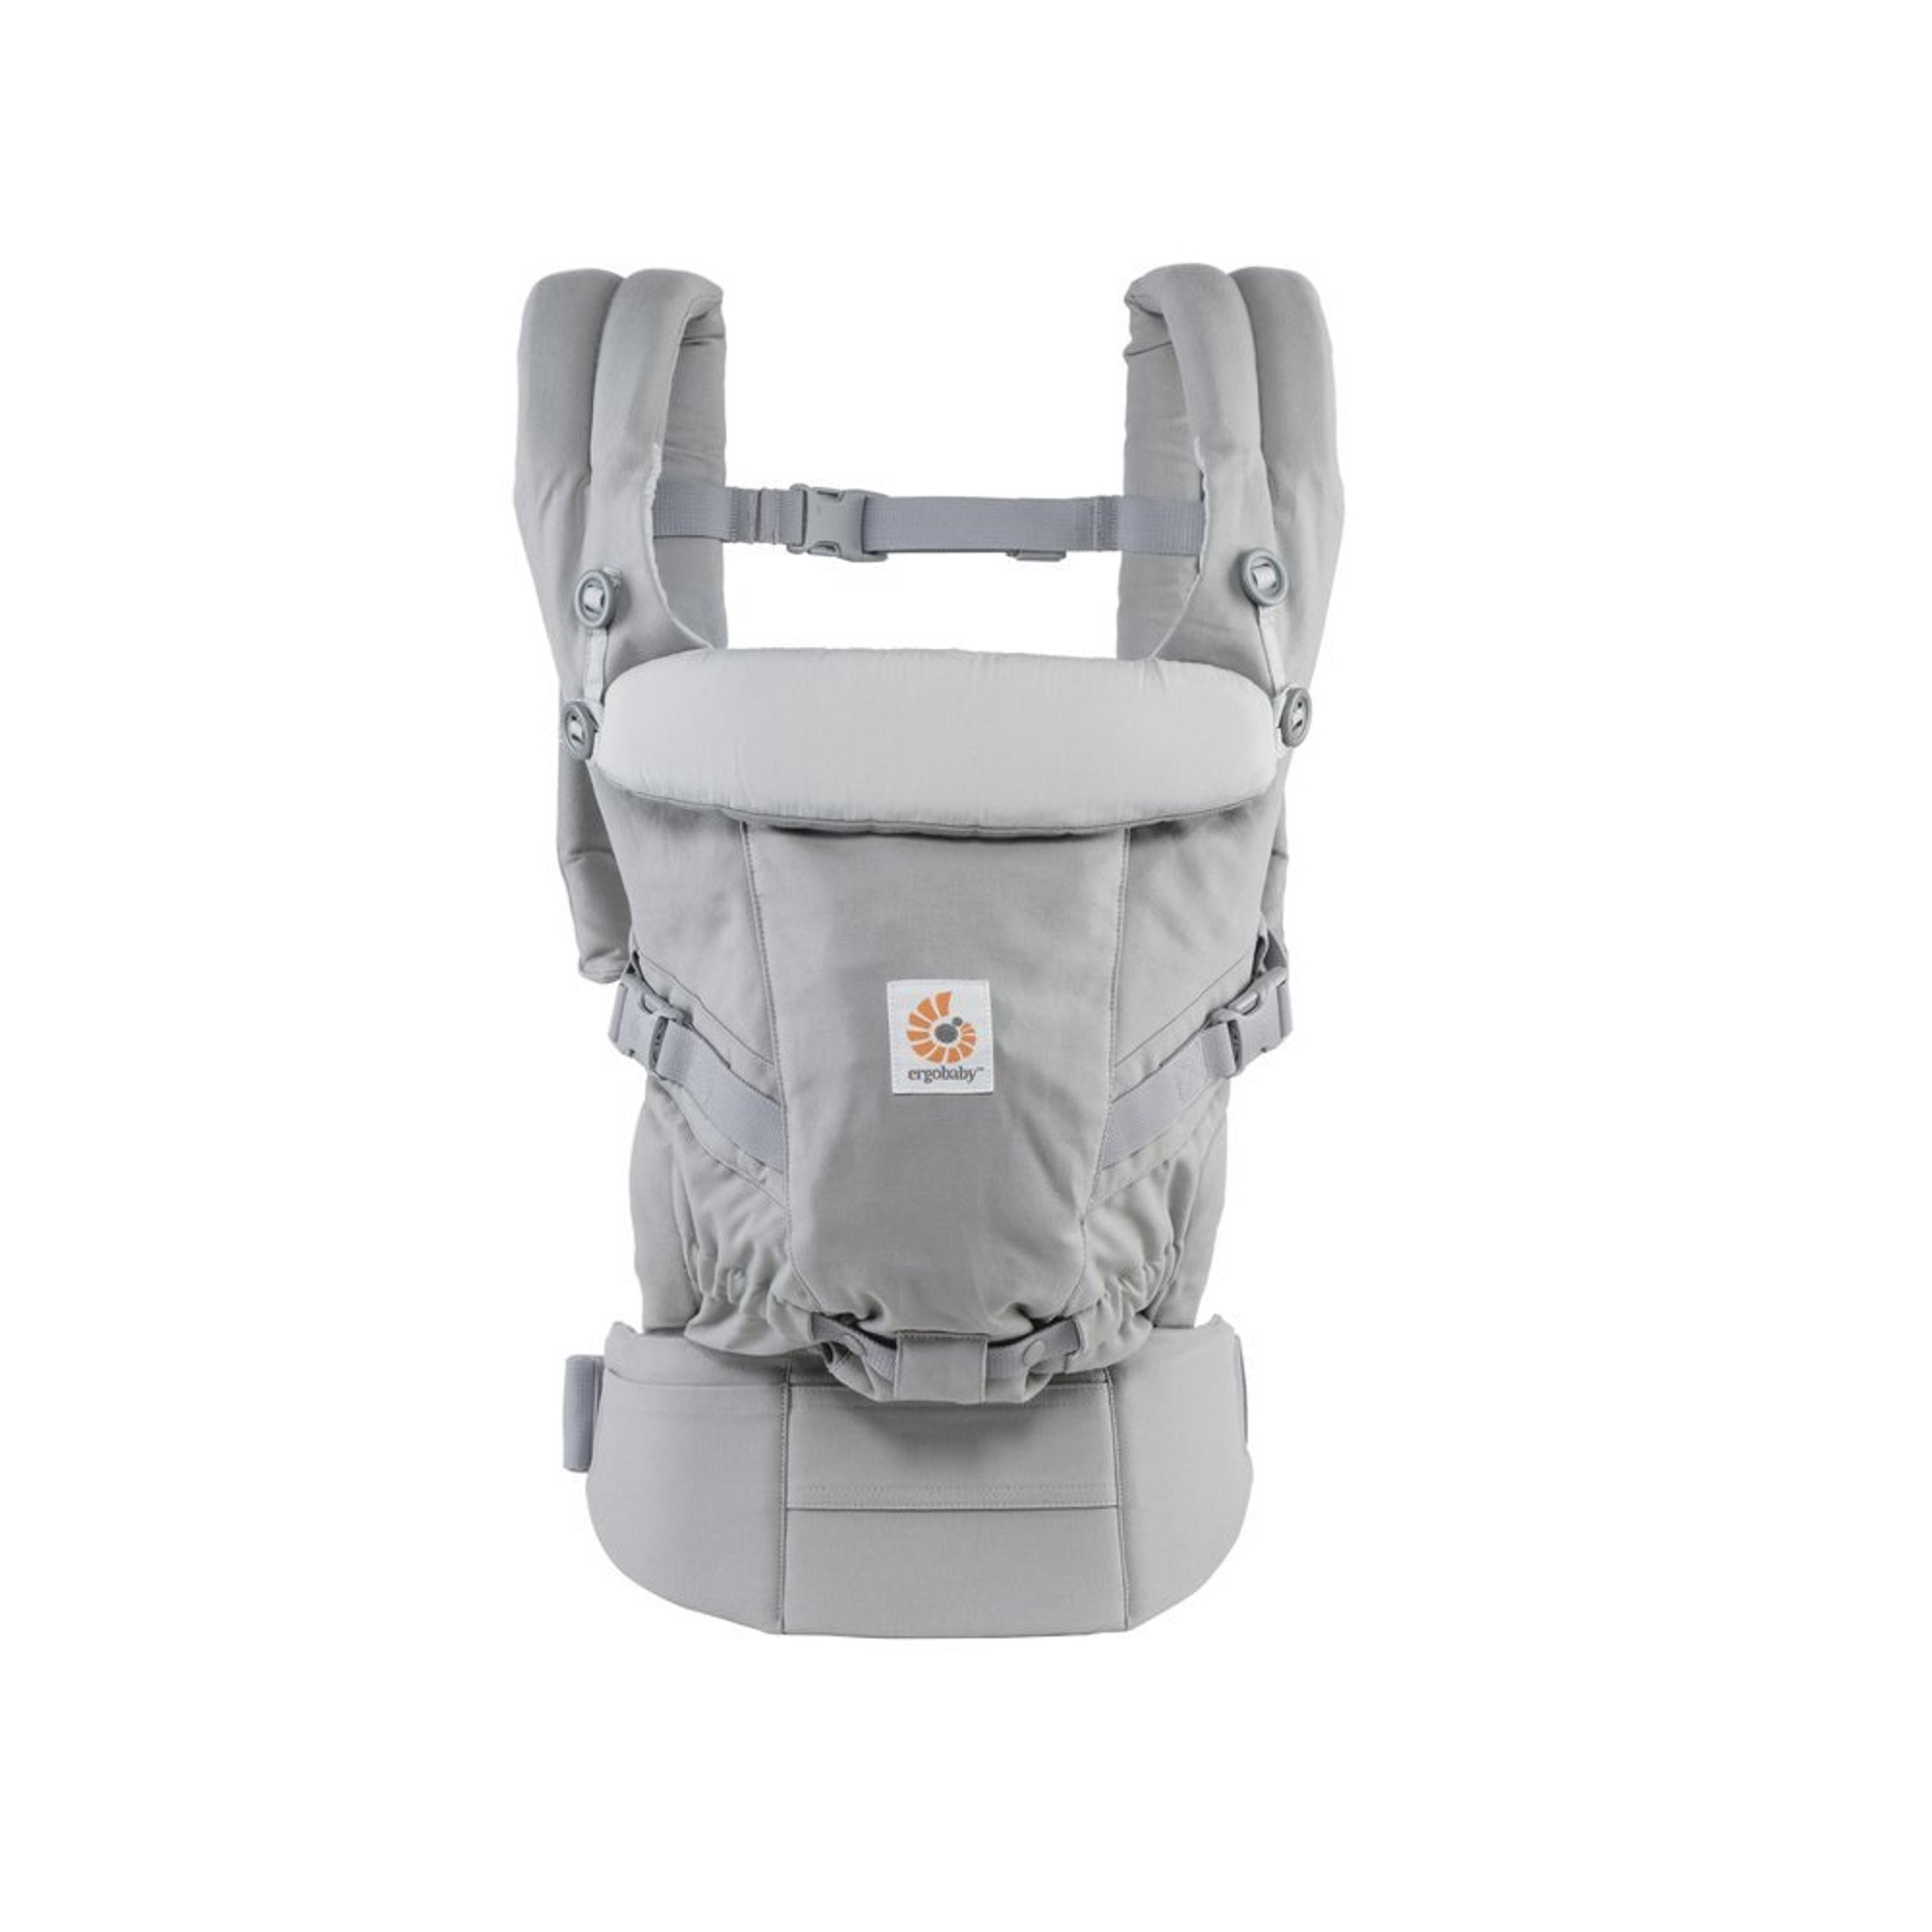 a2503be29af Buy Ergo Baby Adapt Baby Carrier Pearl Grey